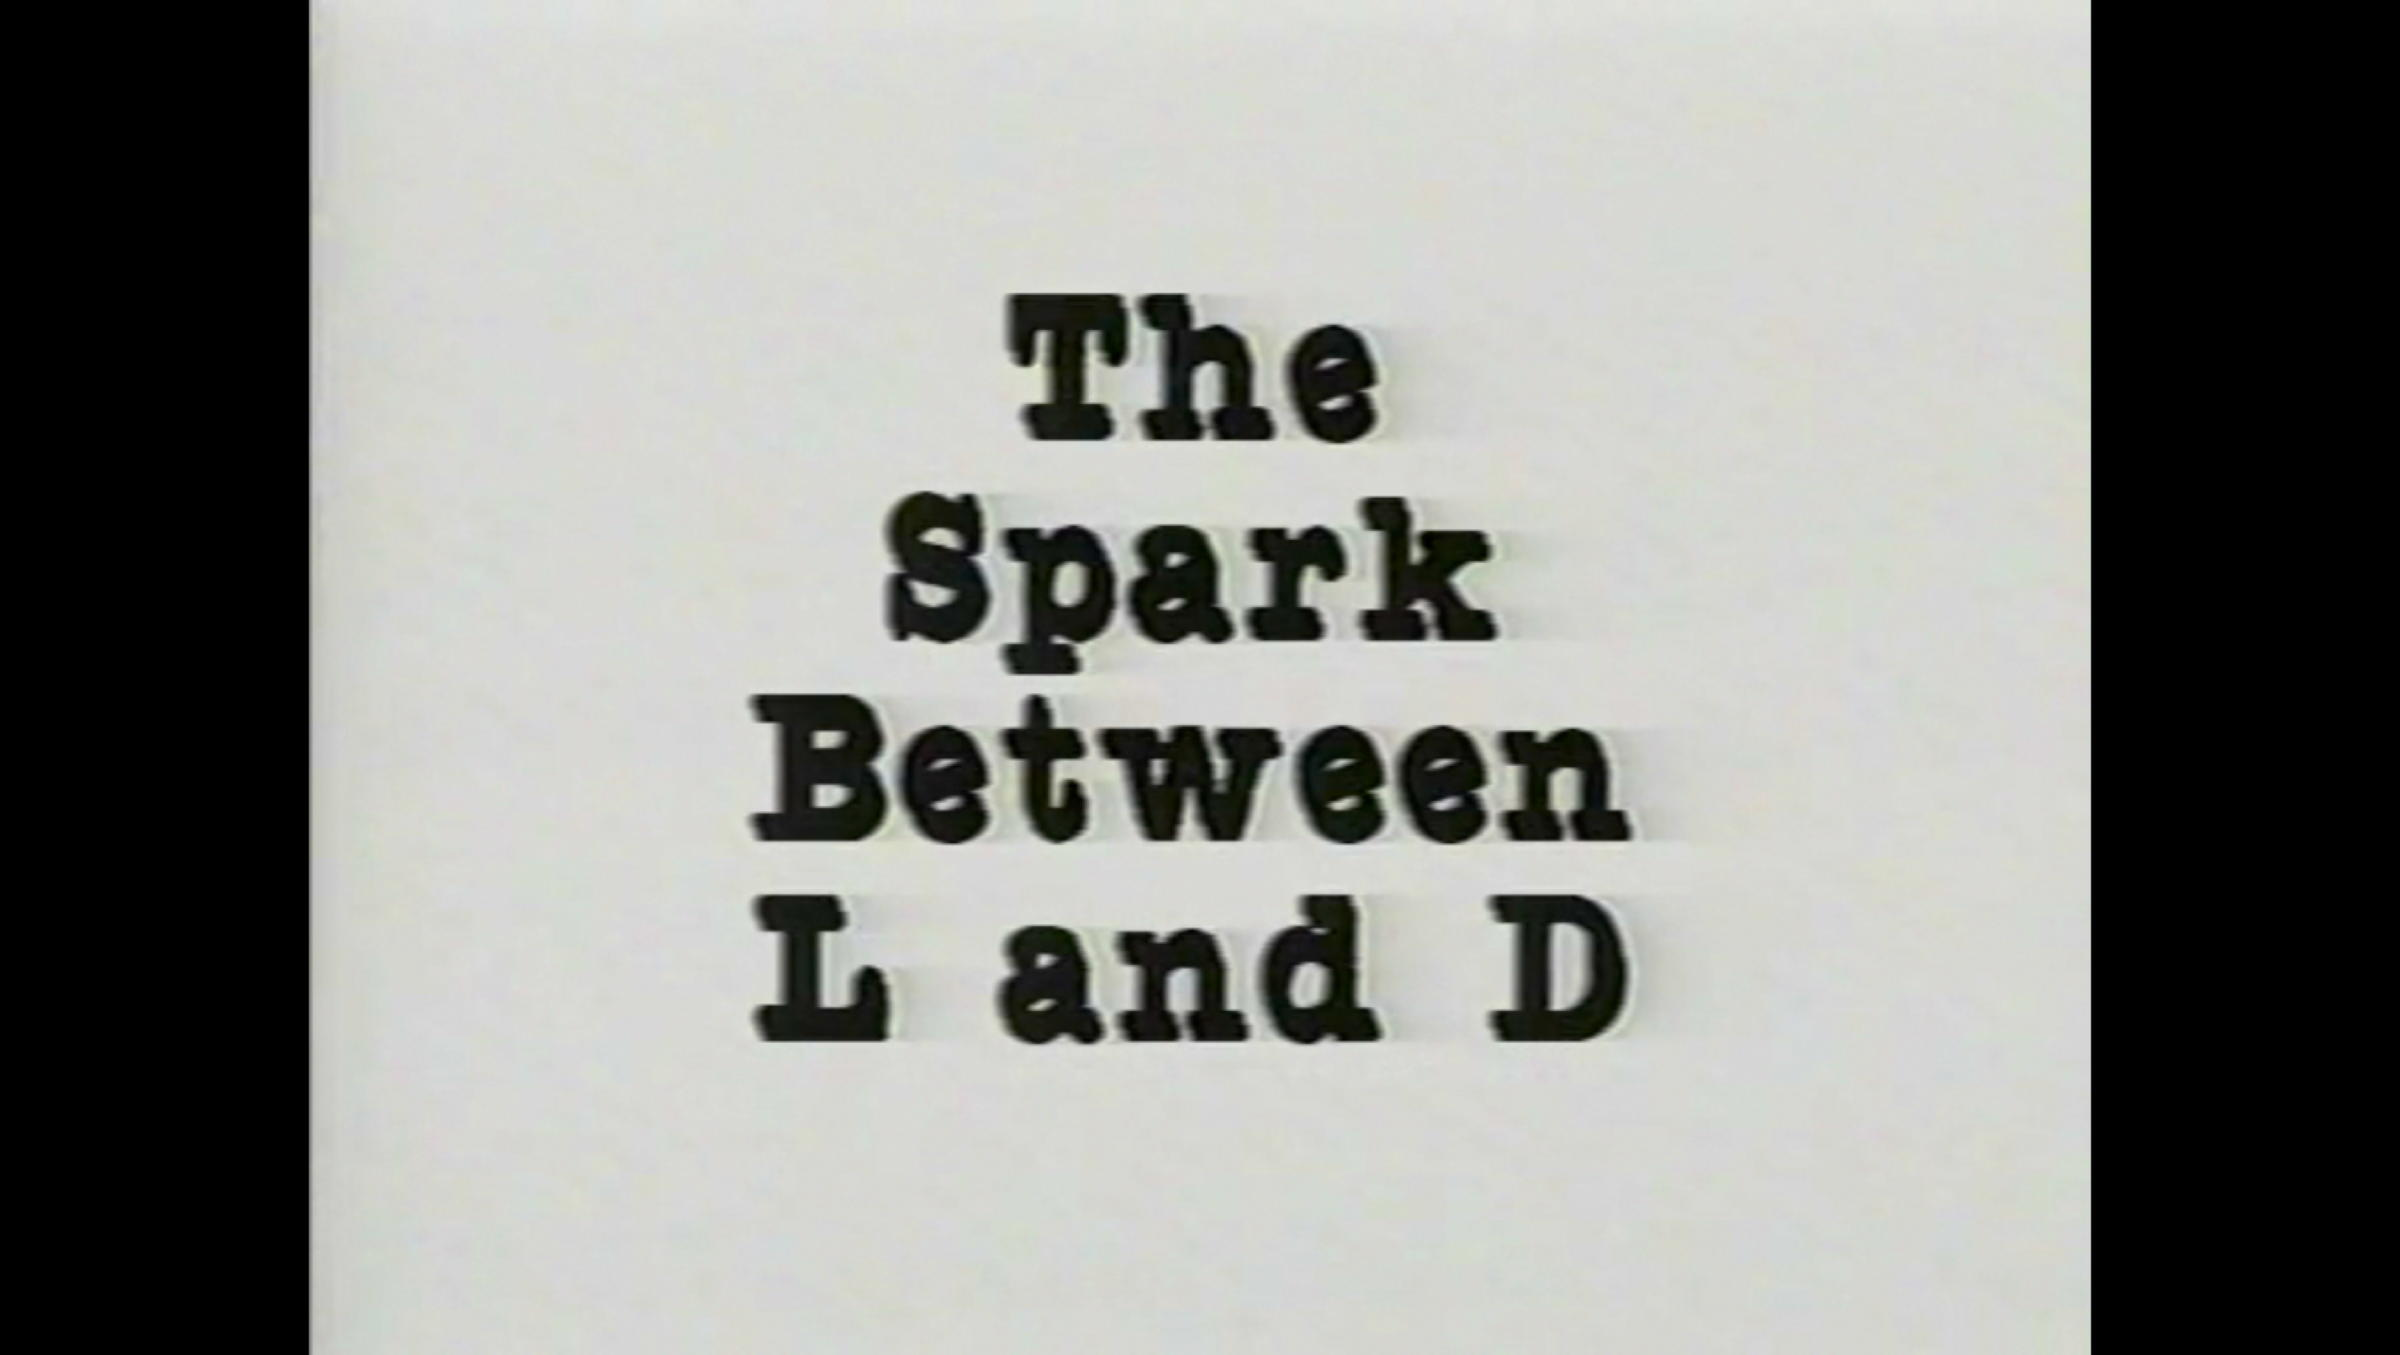 Kathleen White,  The Spark Between L And D  (detail), 1988, performance on VHS transferred to digital video, 11:47 min.